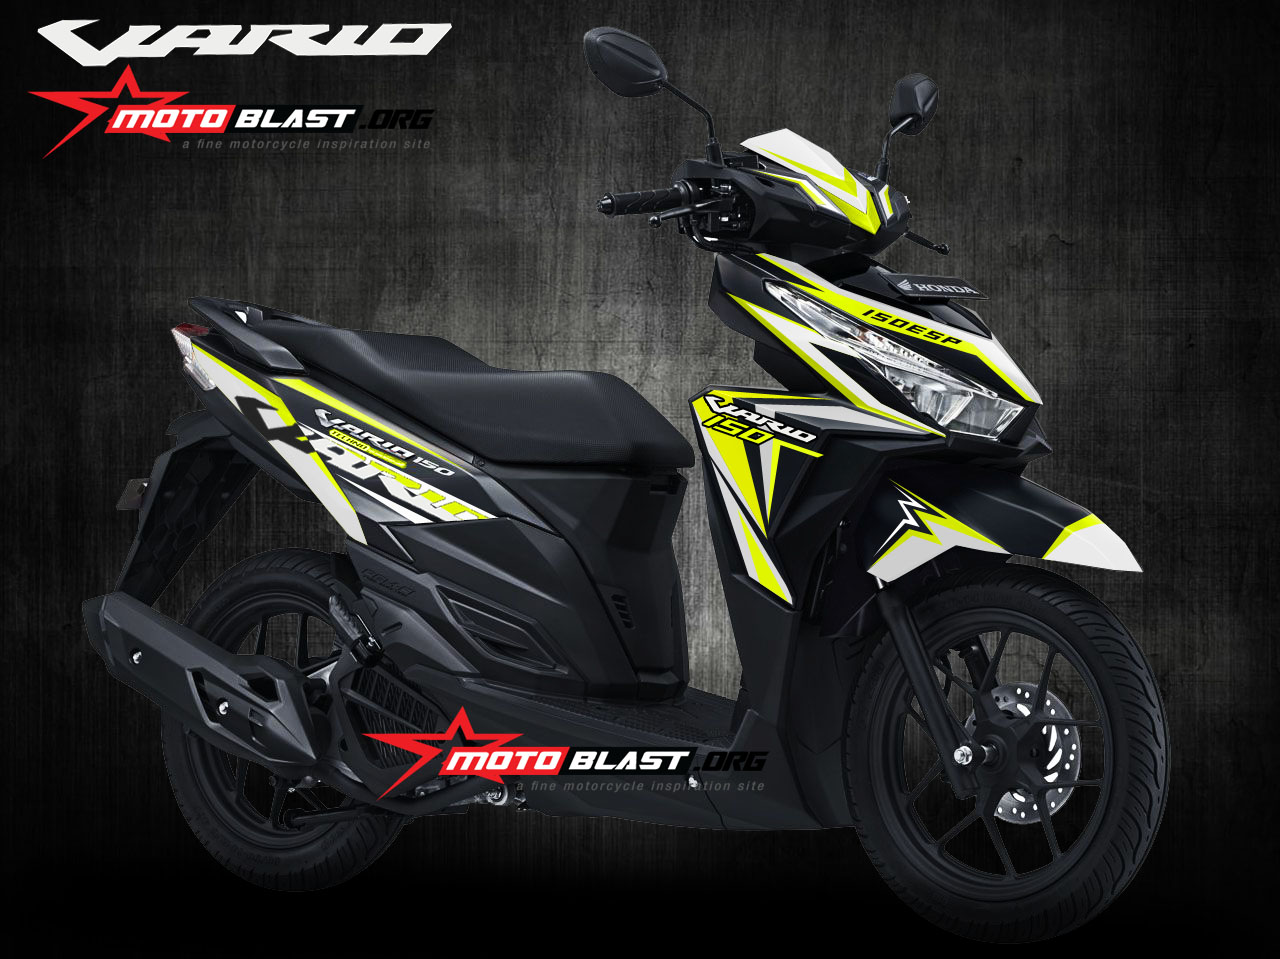 Modifikasi Honda Vario 150esp Black Fresh